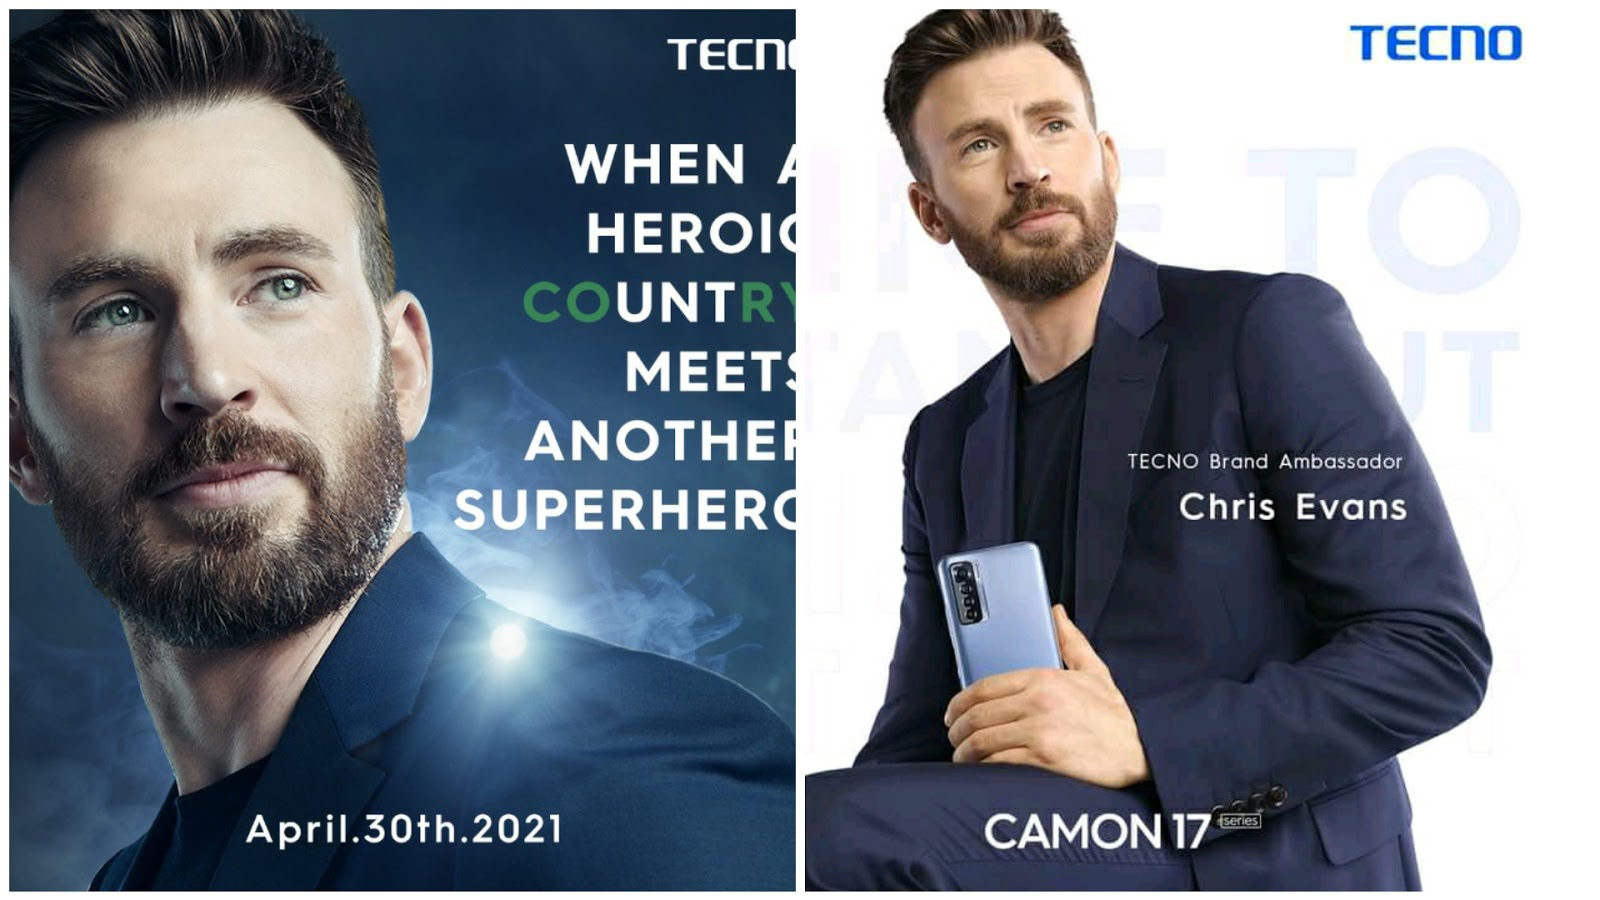 Chris Evans Tecno global brand ambassador